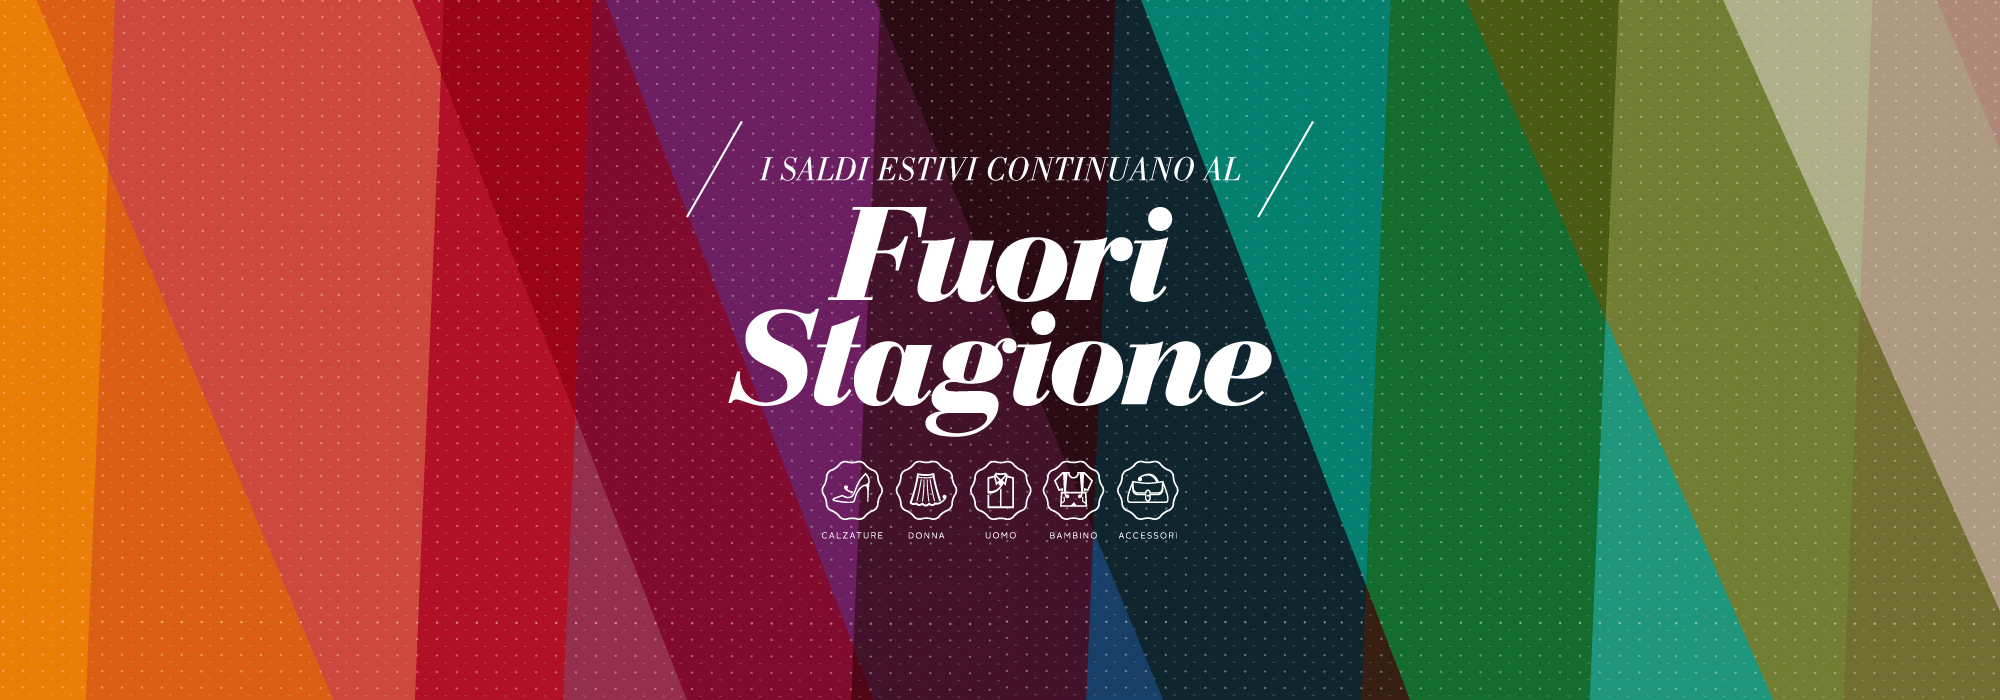 FUORISTAGIONE-WEBSLIDE2